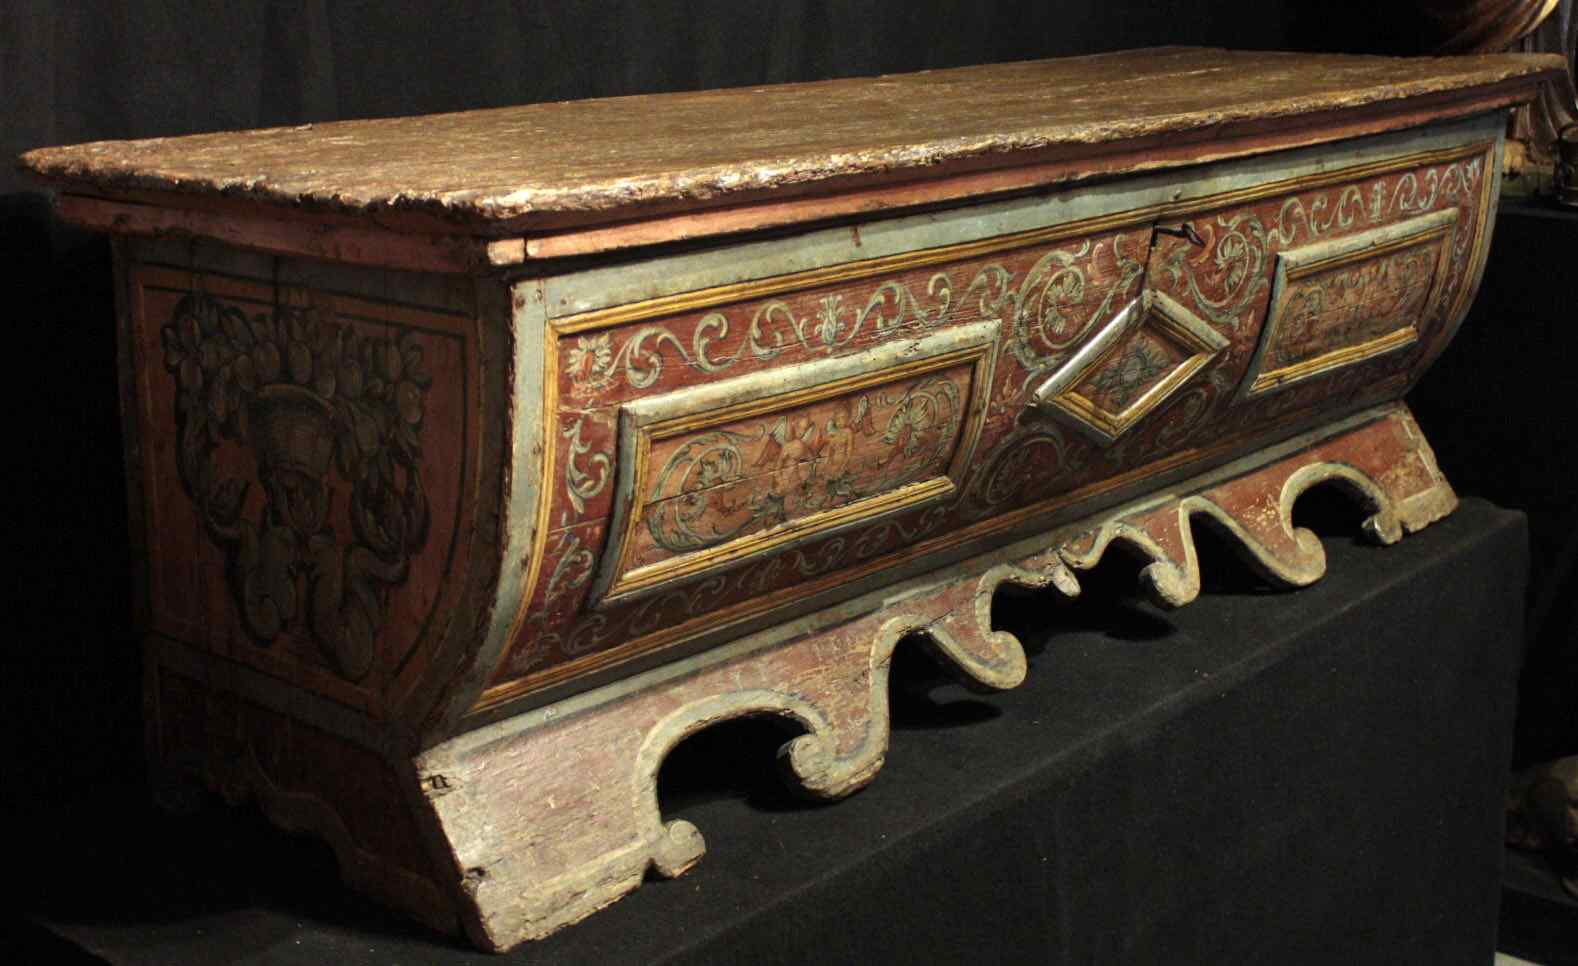 Lacquered wedding chest, Sec. XVI